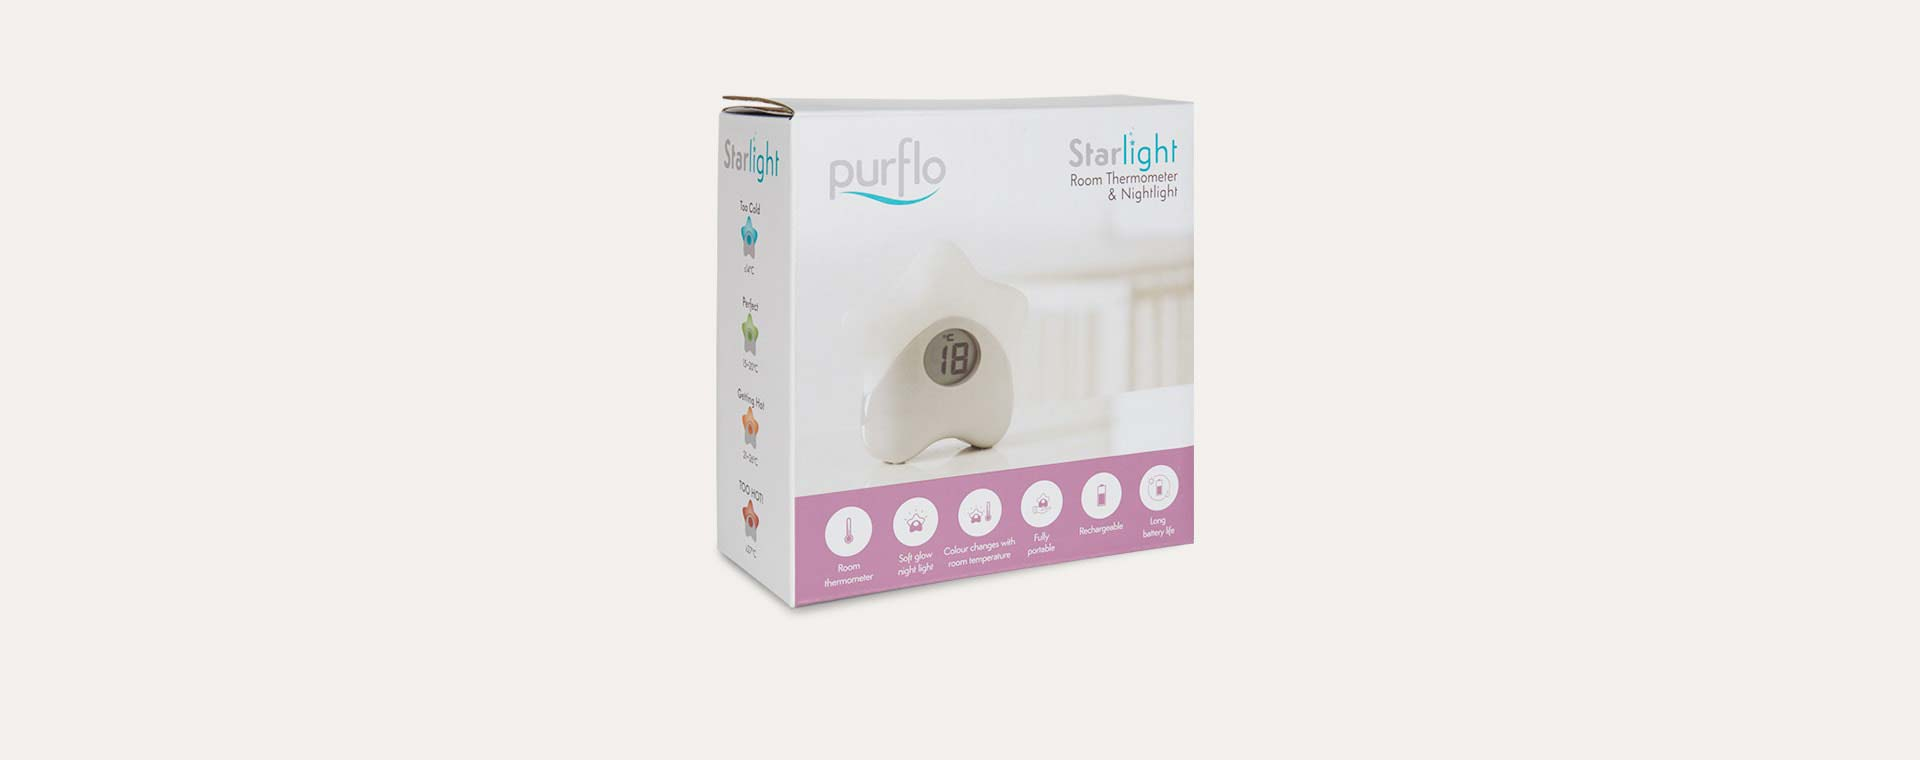 White PurFlo Starlight Room Thermometer